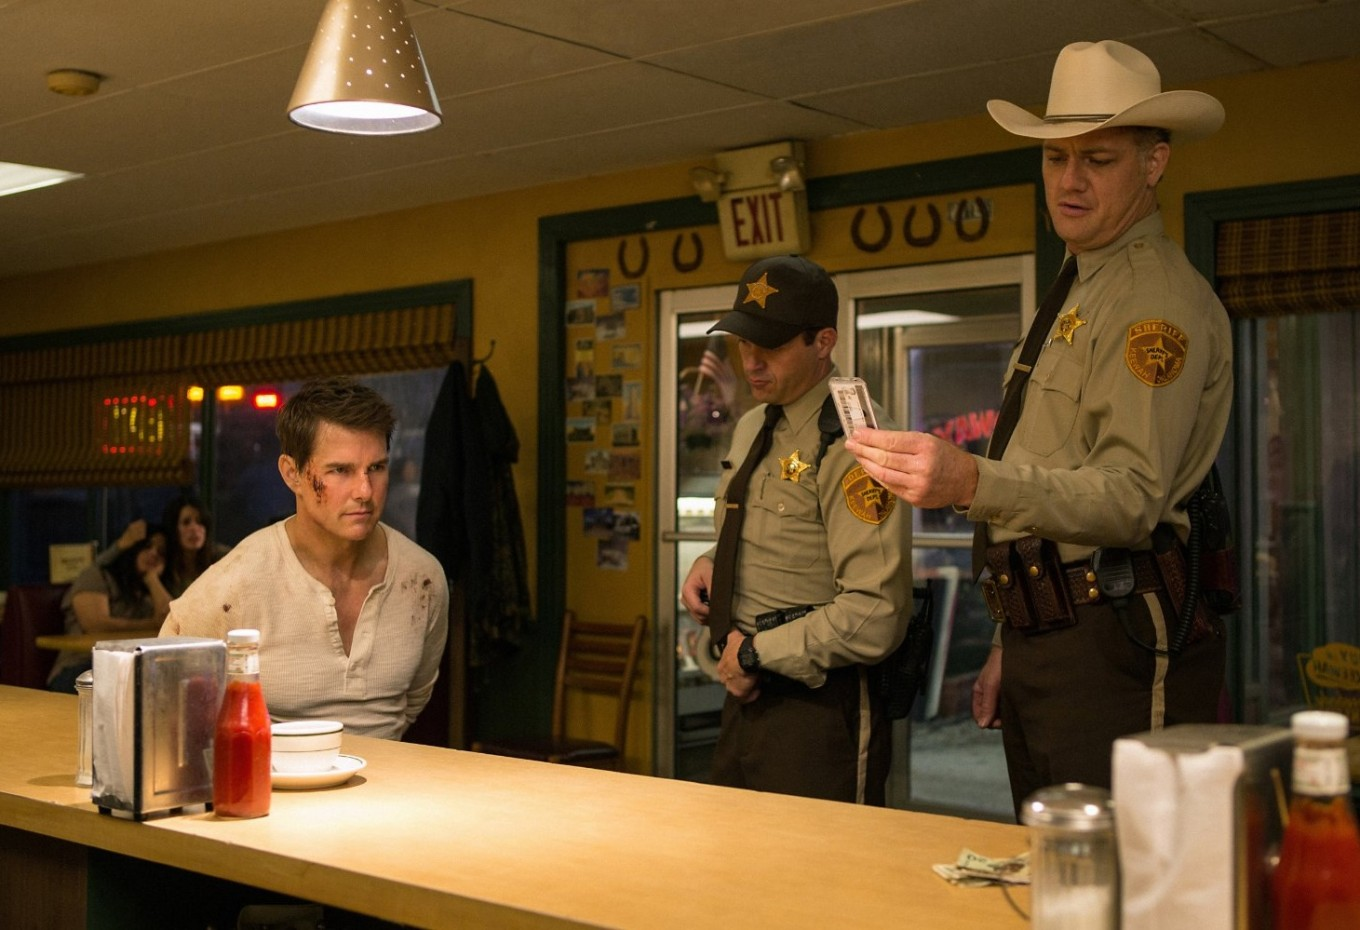 No more Jack Reacher movies with Tom Cruise, says author Lee